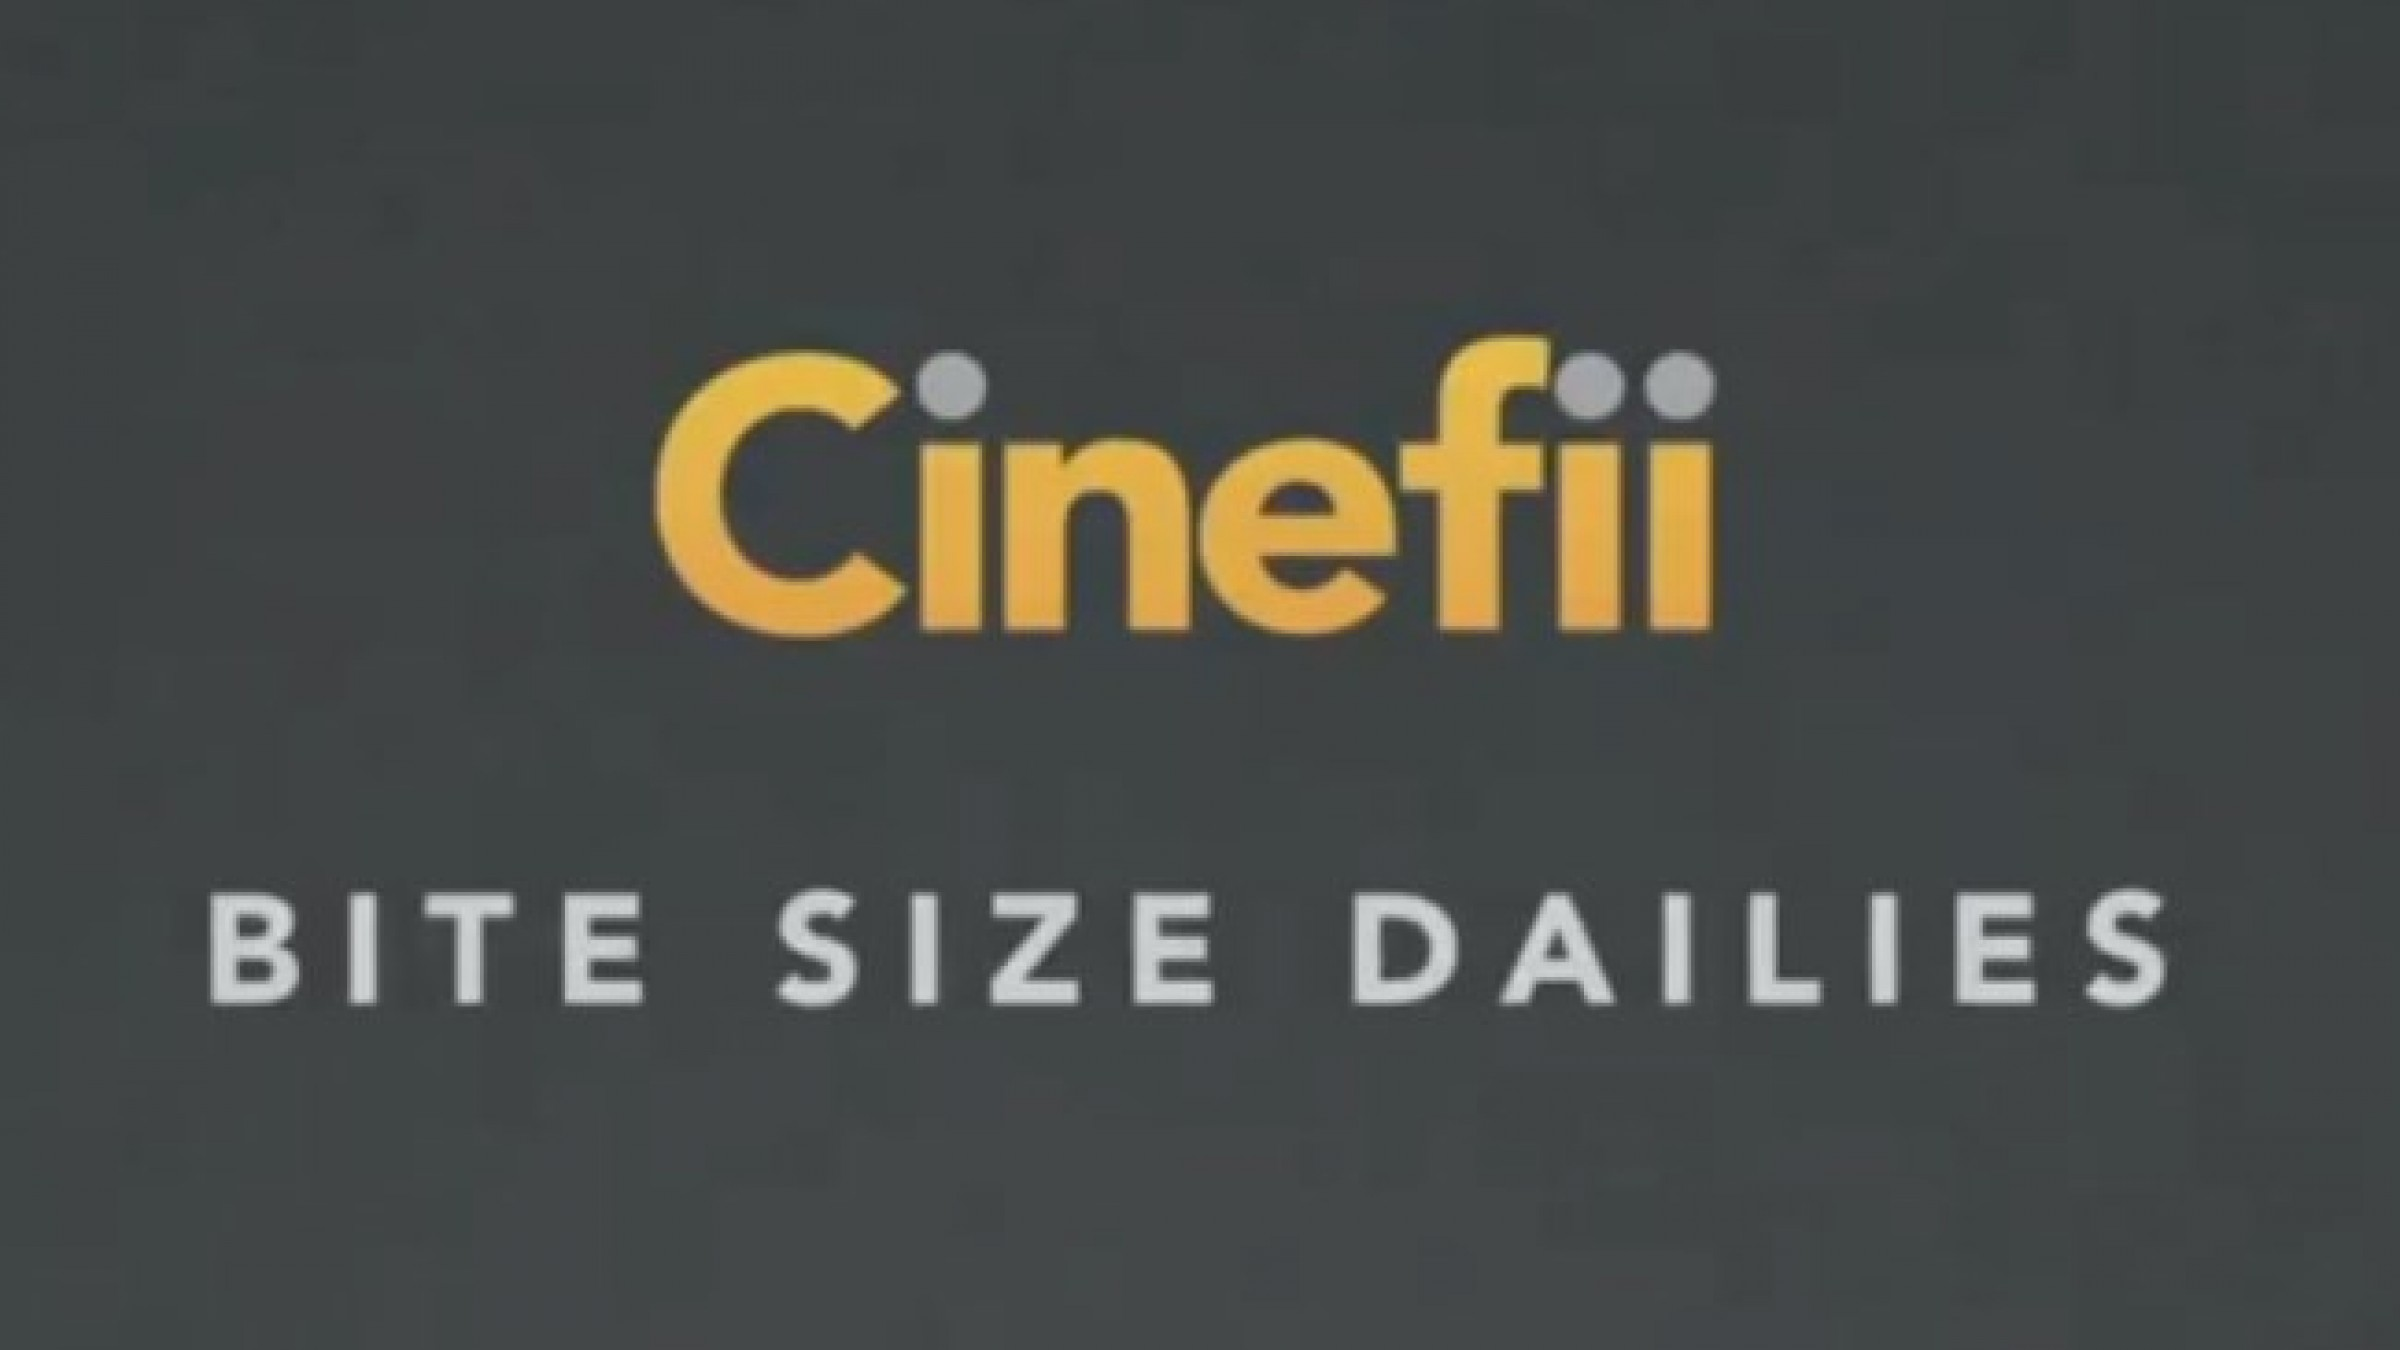 Cinefii's 'Bite Size Dailies' Provide Insightful Cinematography Tips in 3 Minutes or Less